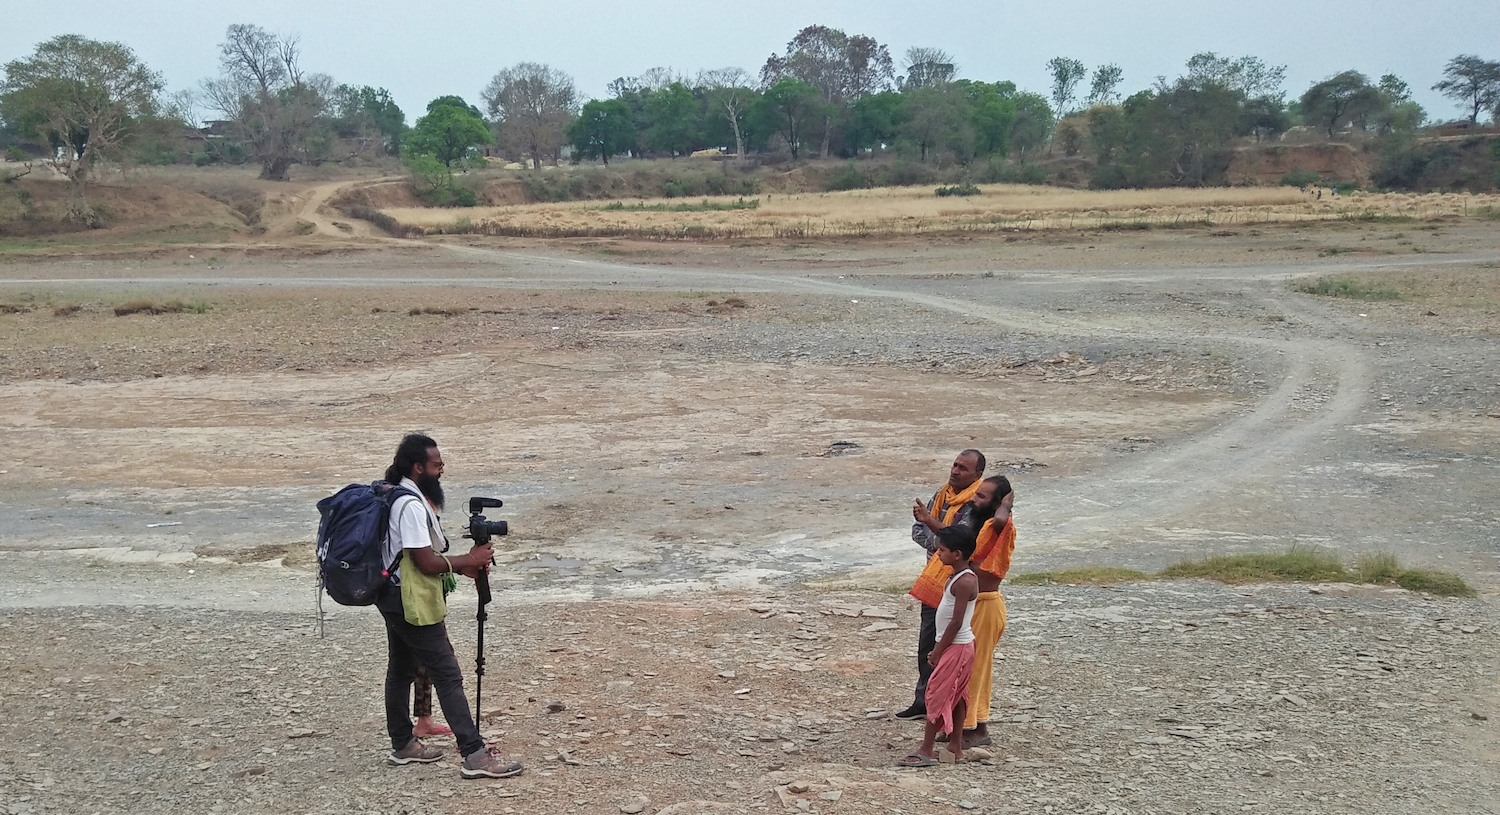 Interviews are a large part of Siddharth's journey. Here he speaks with village folk on the dry bed of the River Ken, where the water situation was dismal. 